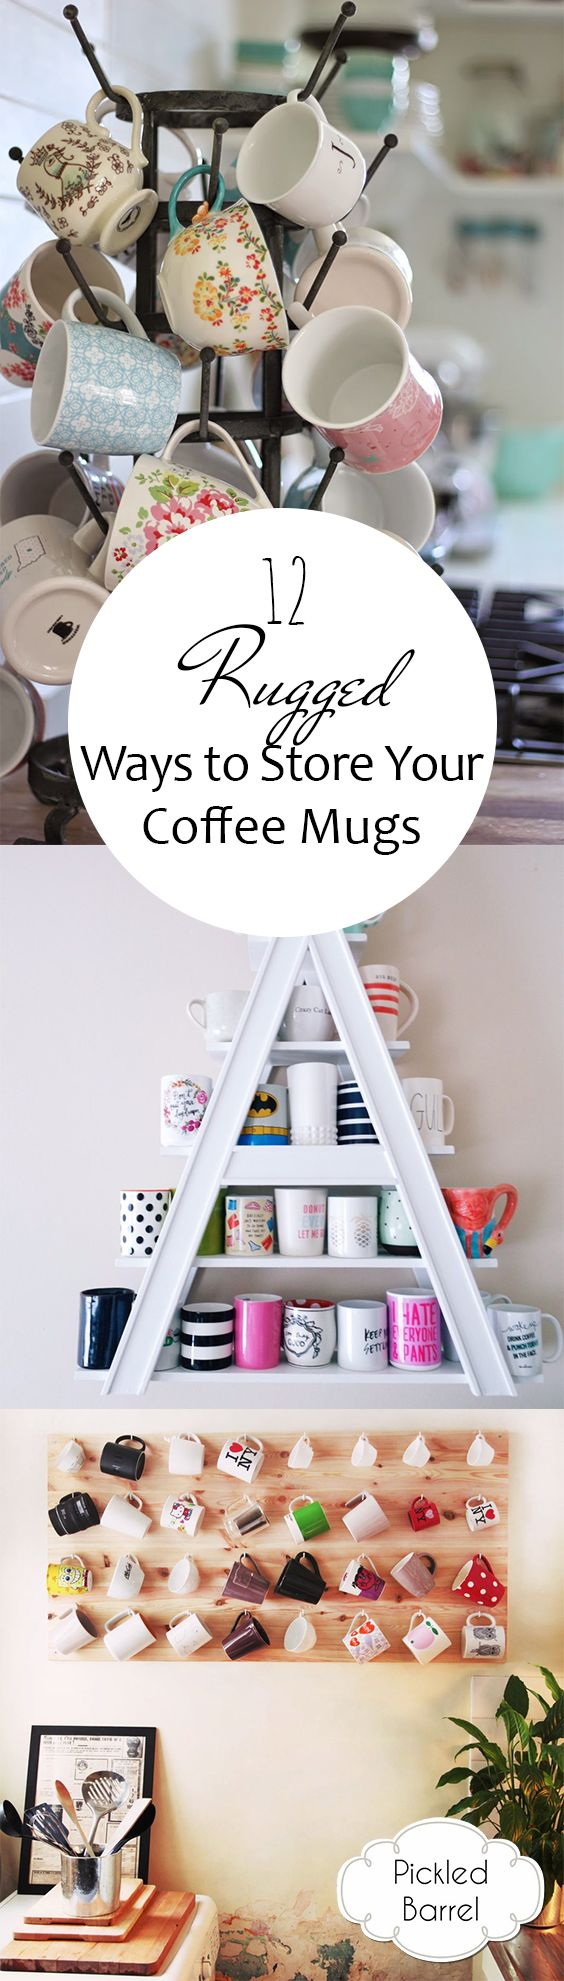 12 Rugged Ways to Store Your Coffee Mugs